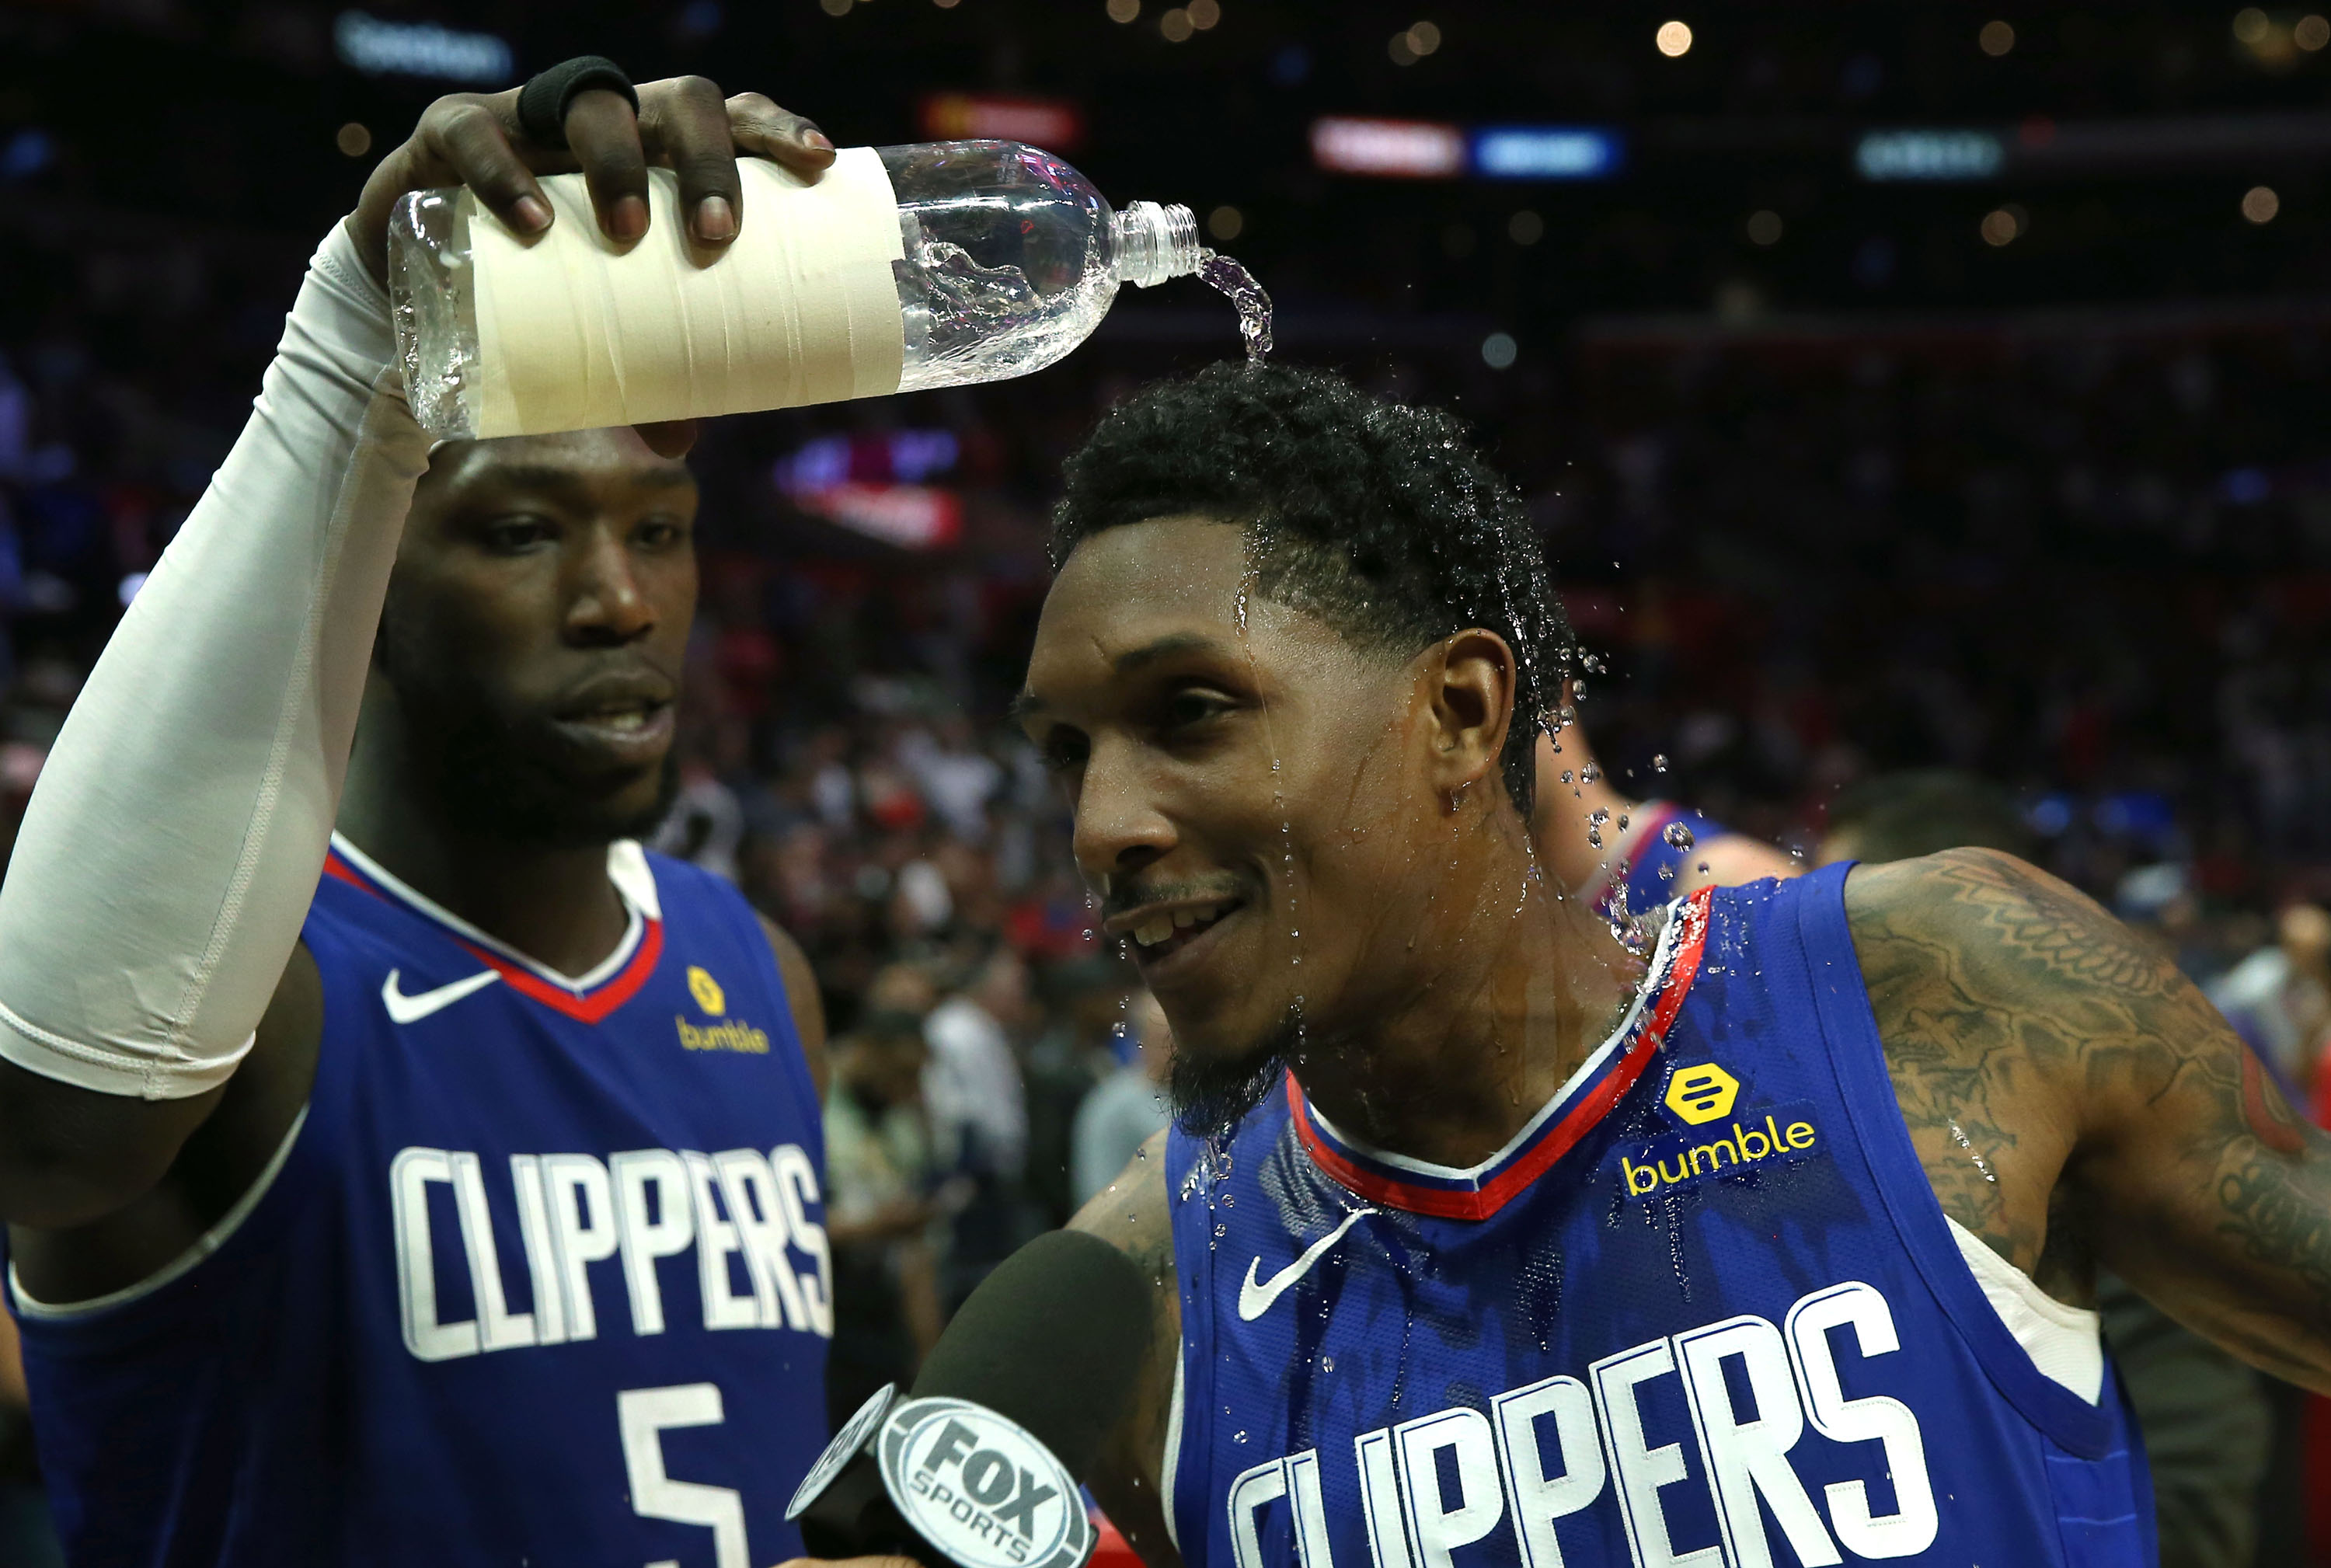 Clippers Lou Williams